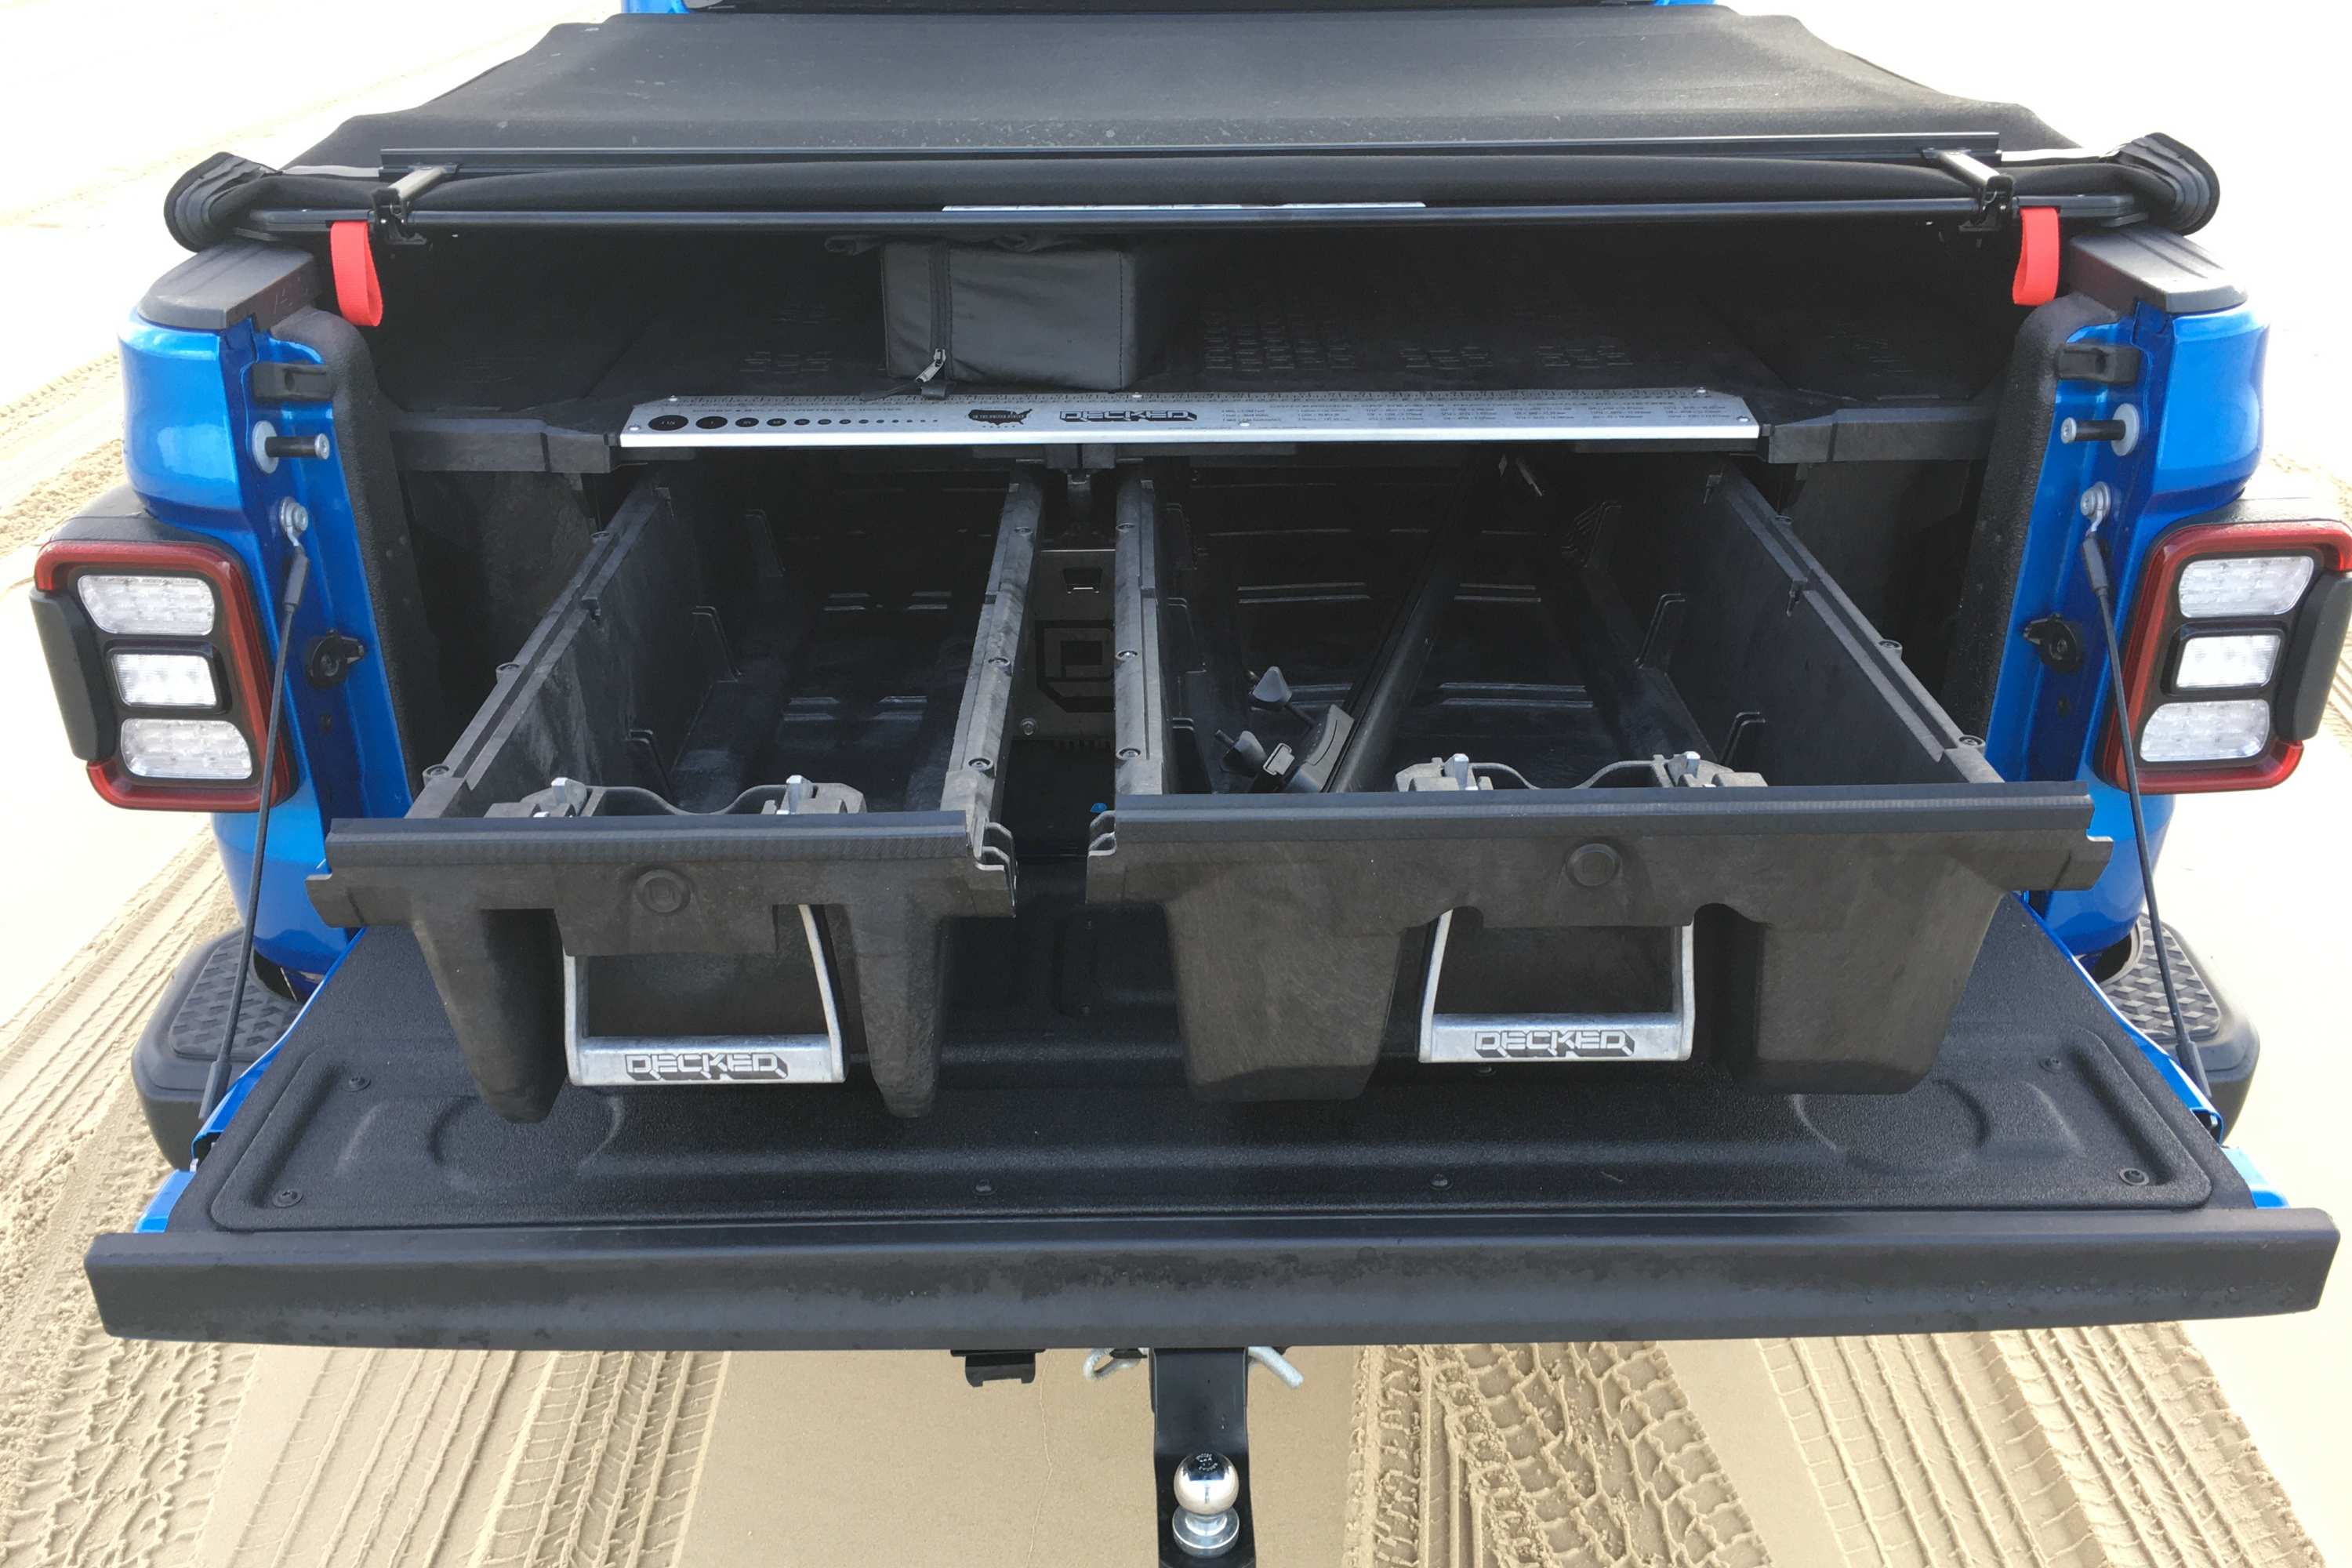 Jeep Gladiator Overland 4WD Ute tray